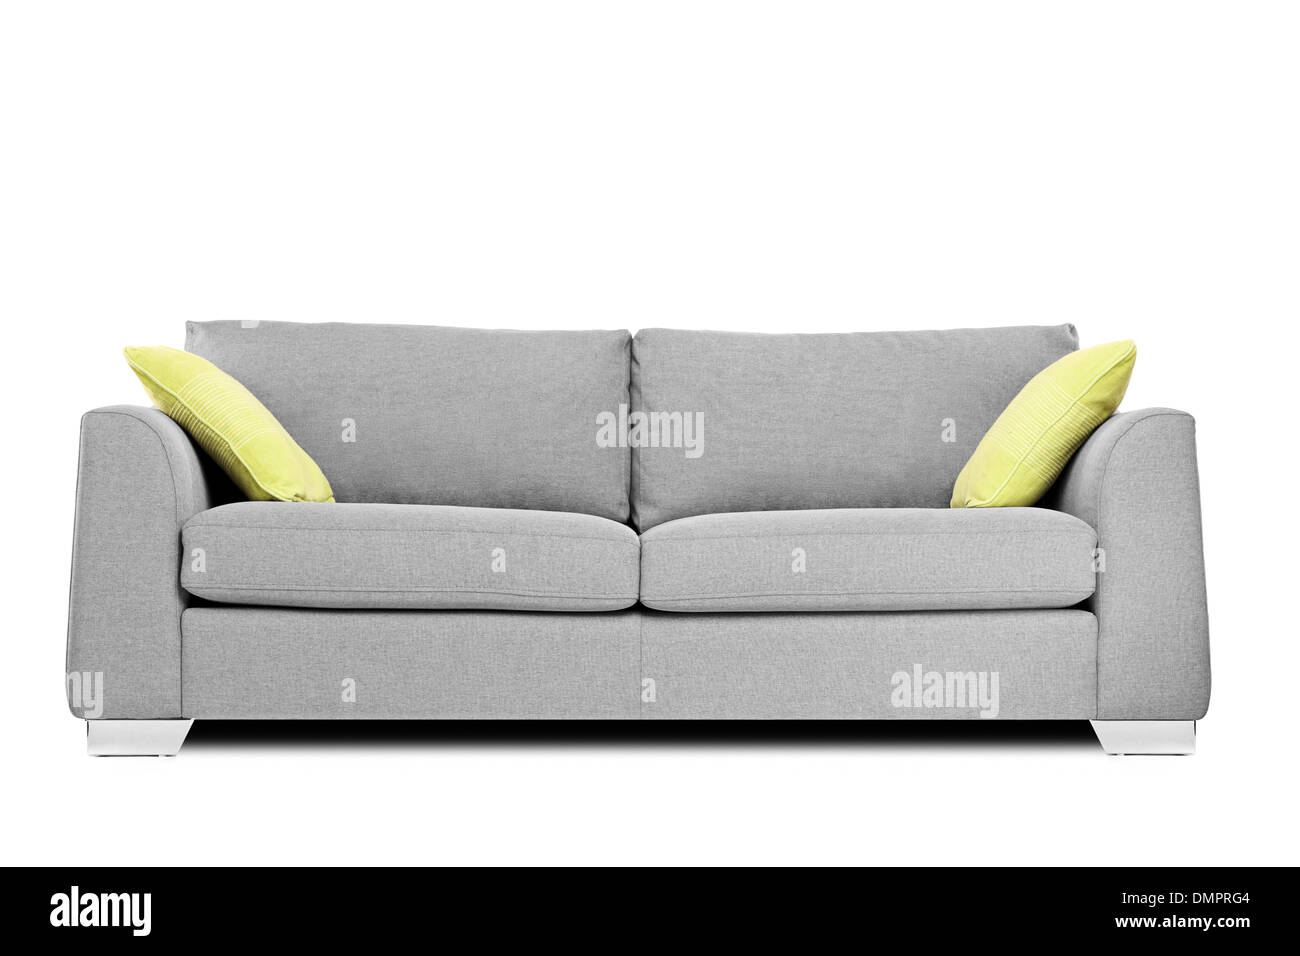 Studio shot of a modern couch with pillows - Stock Image